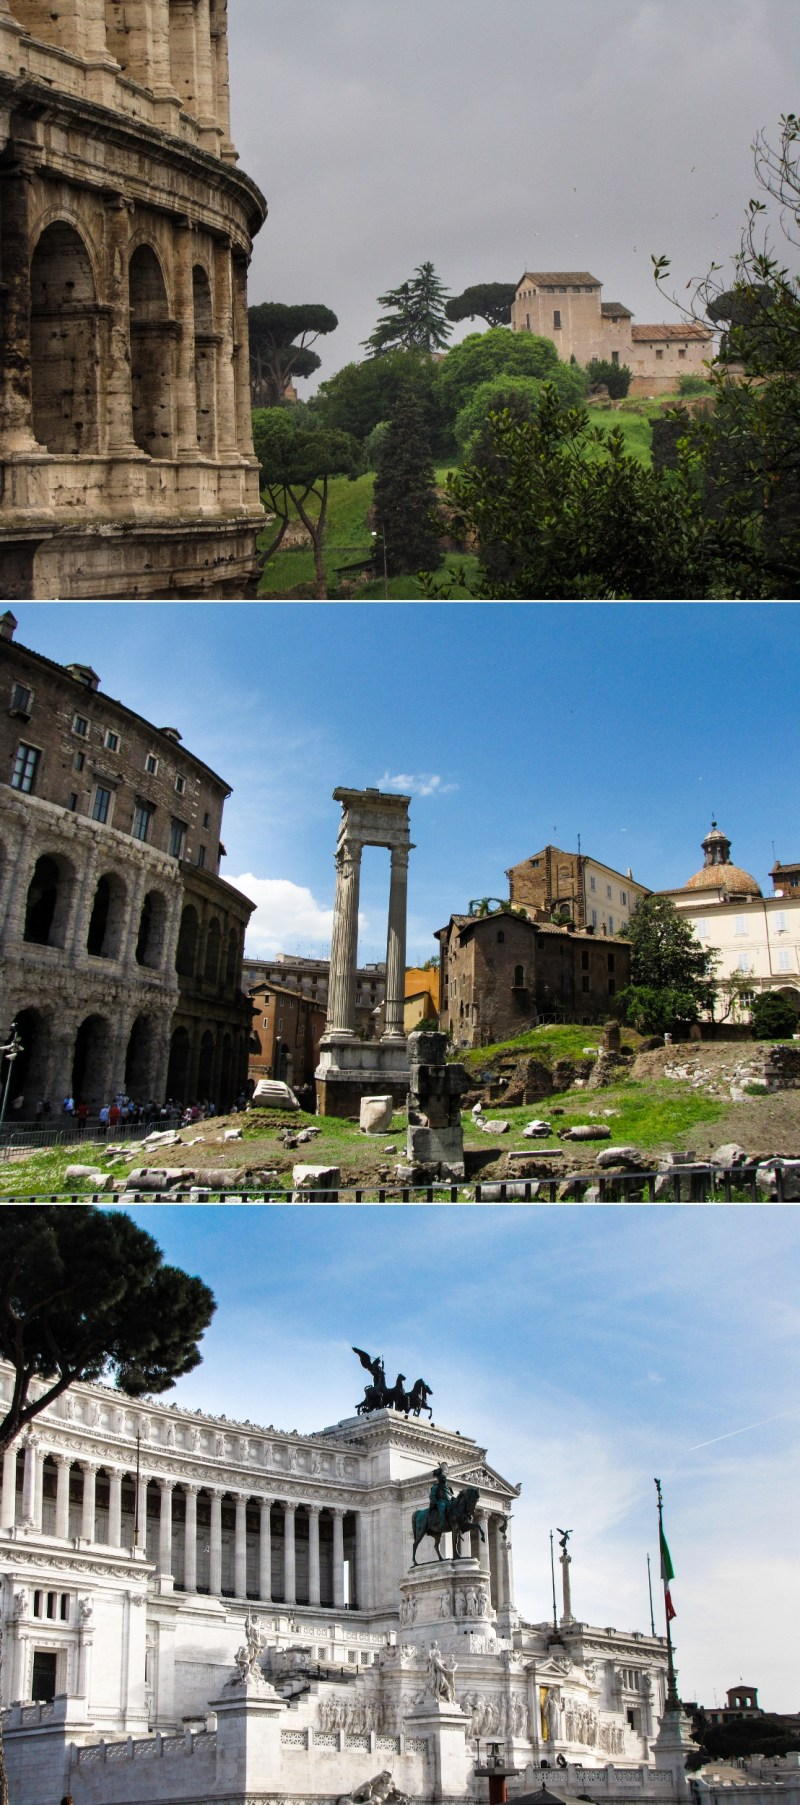 Sights of Rome